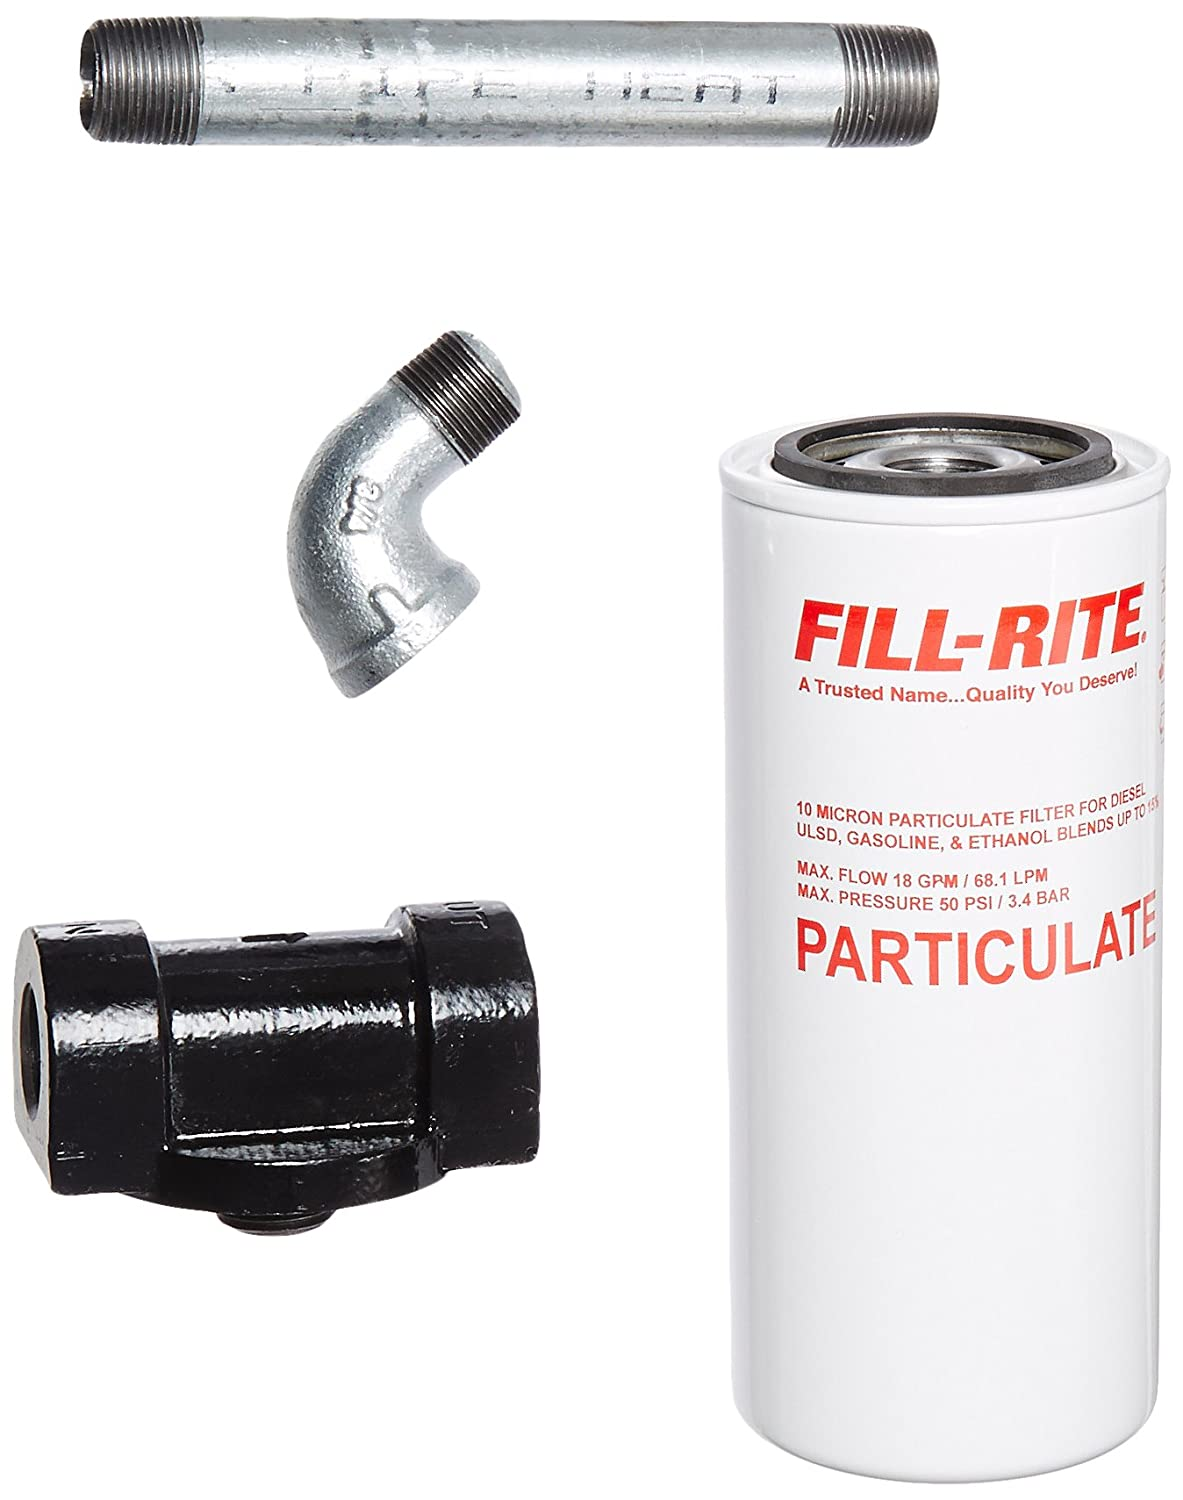 Fill-Rite, 1200KTF7018, Housing, Fuel Filter